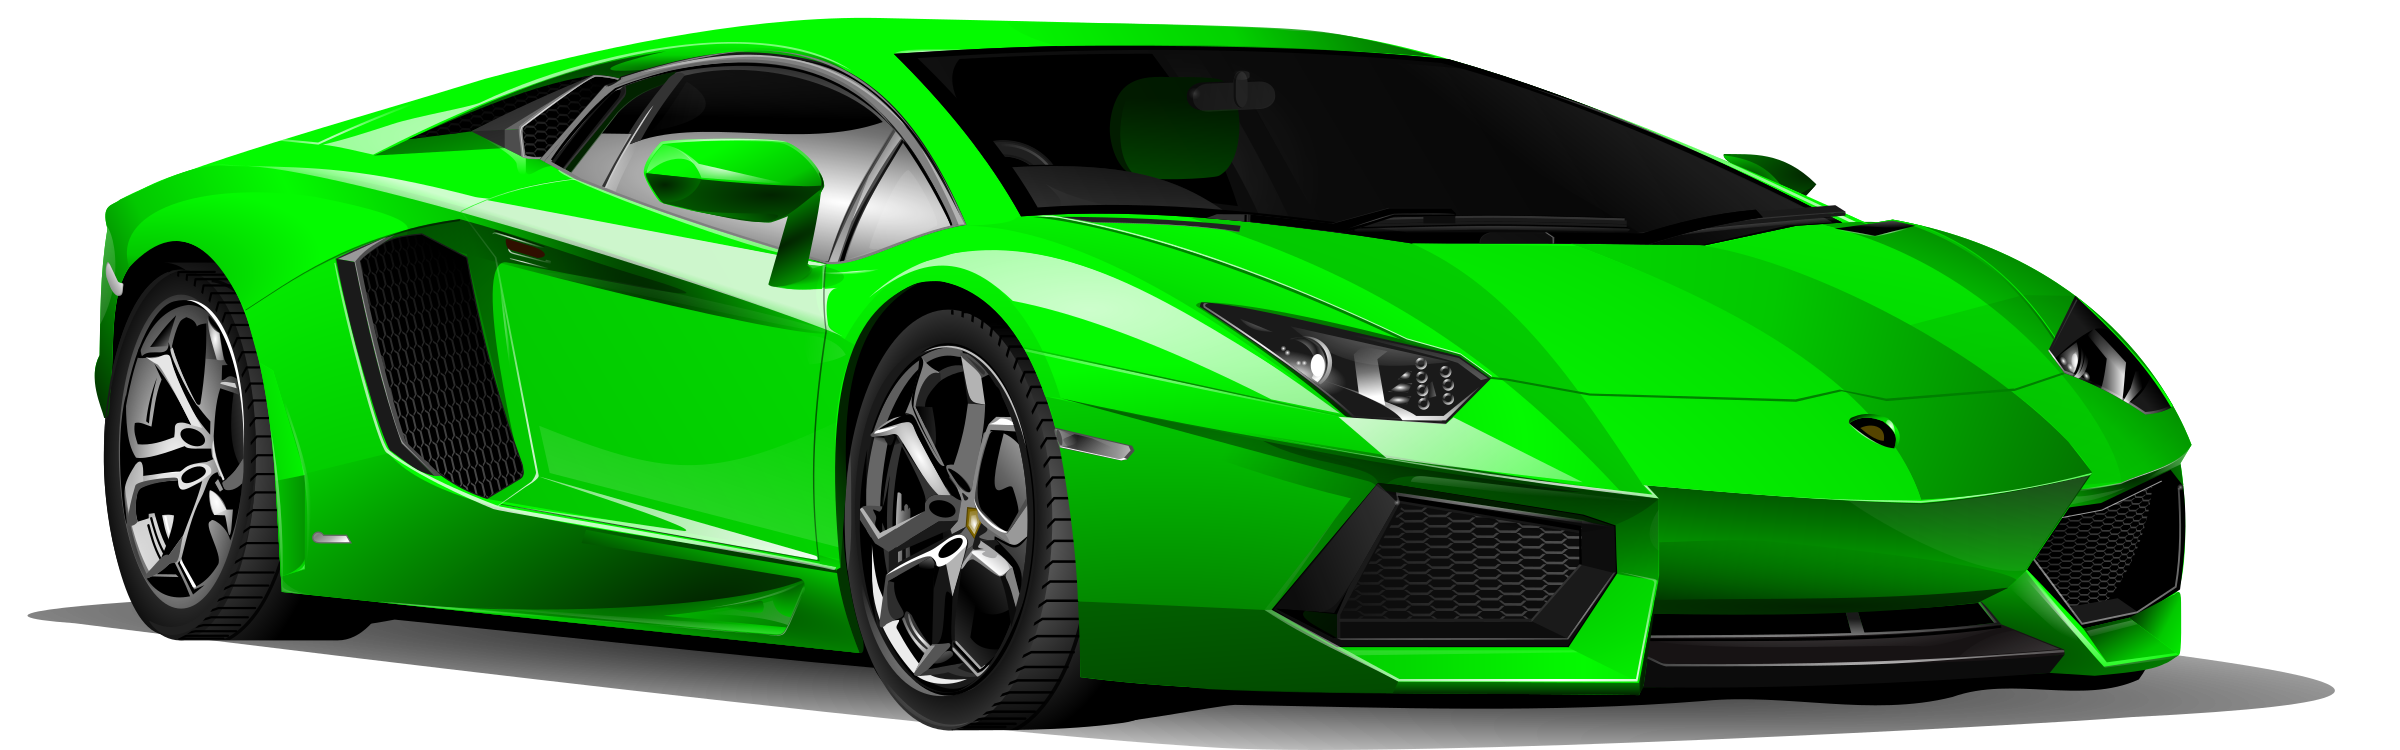 Car clipart green png free library 28+ Collection of Green Clipart Car | High quality, free cliparts ... png free library